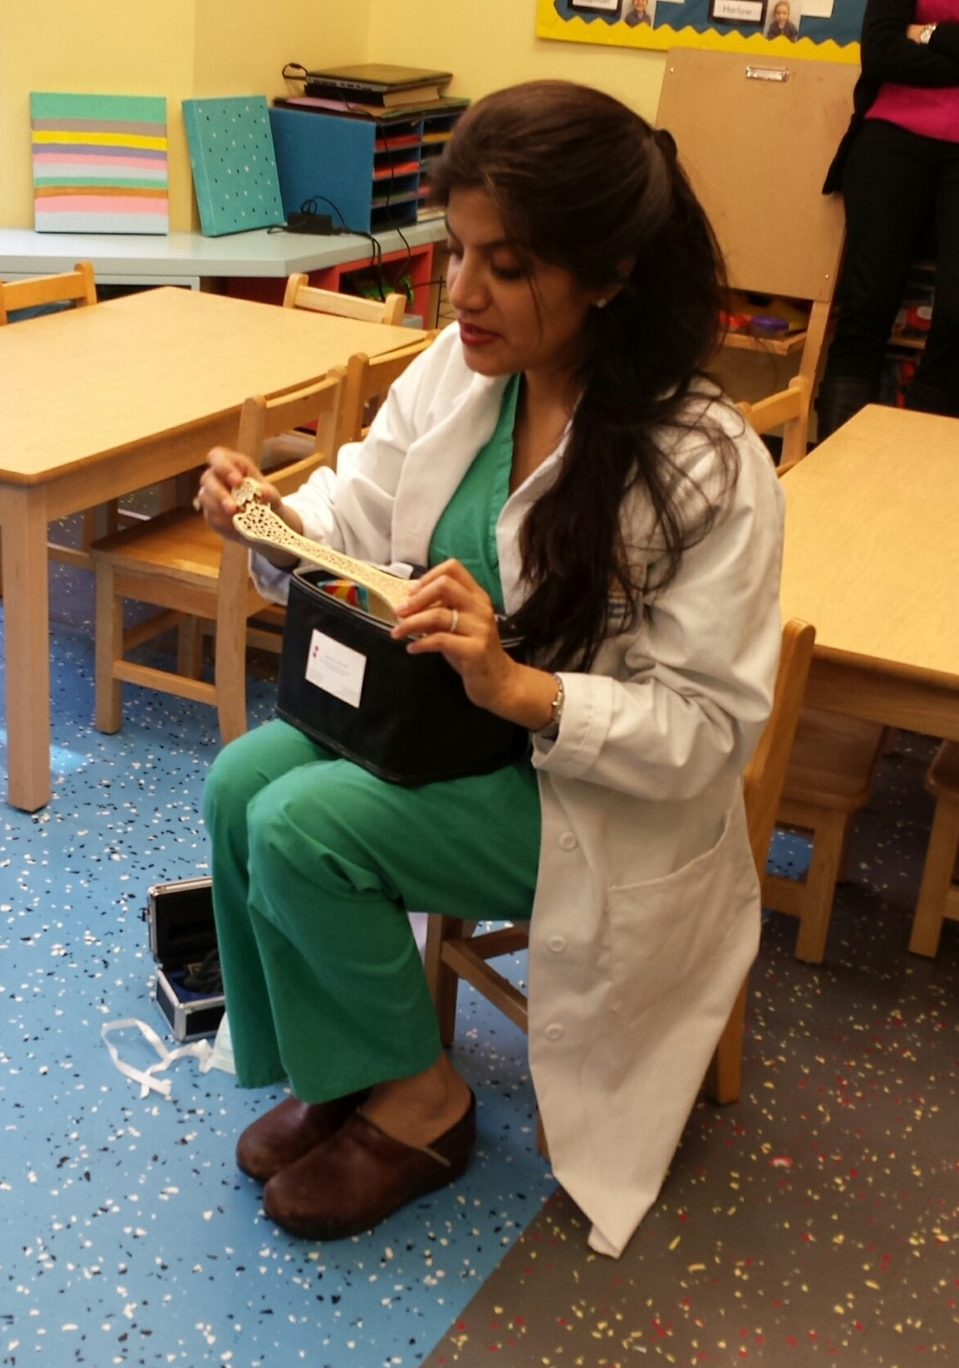 Dr. Devgan demonstrating how to be a doctor.